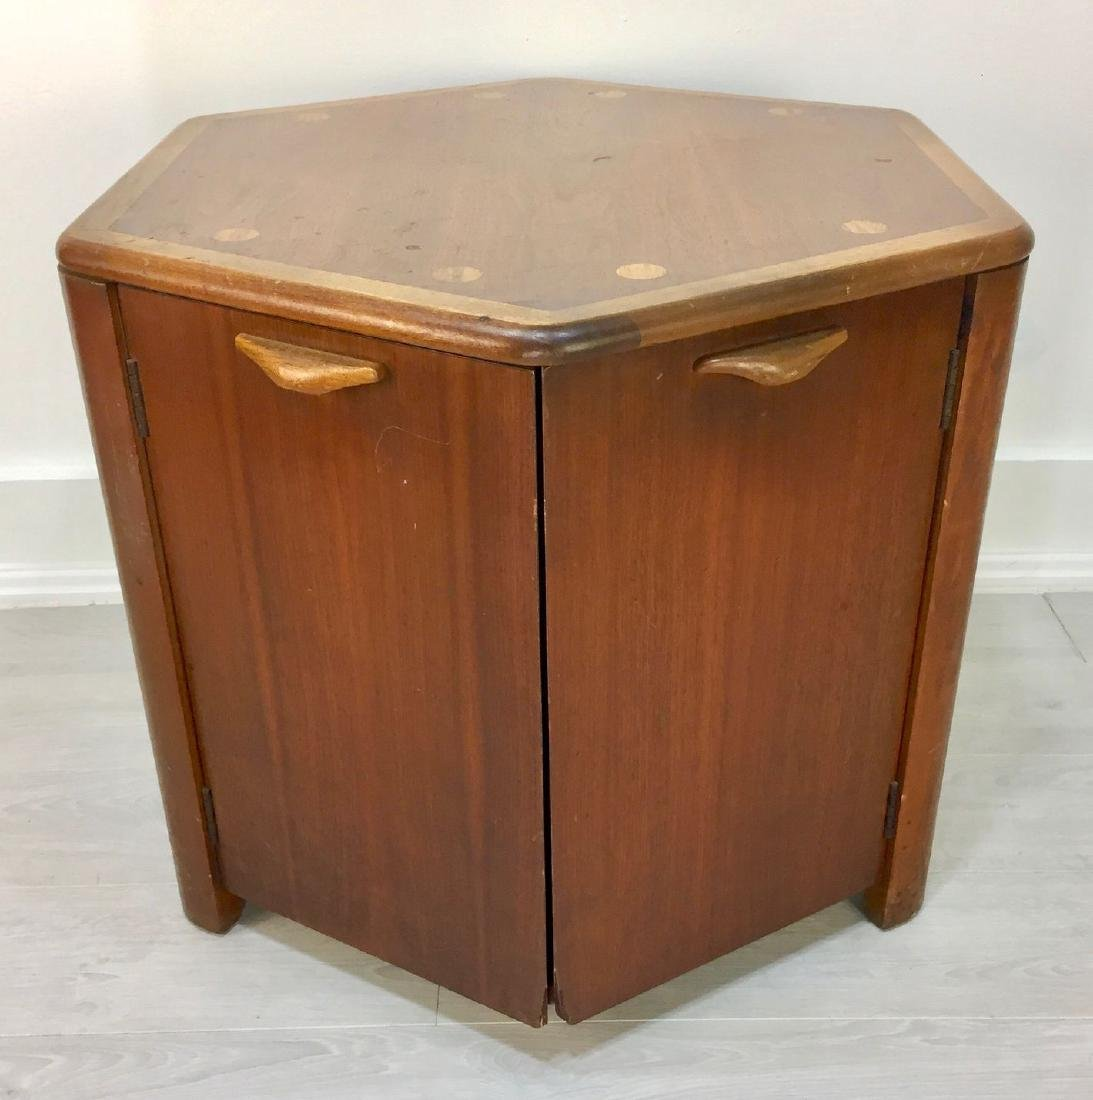 Storage Cabinet-End Table from Lane Furniture's Acclaim